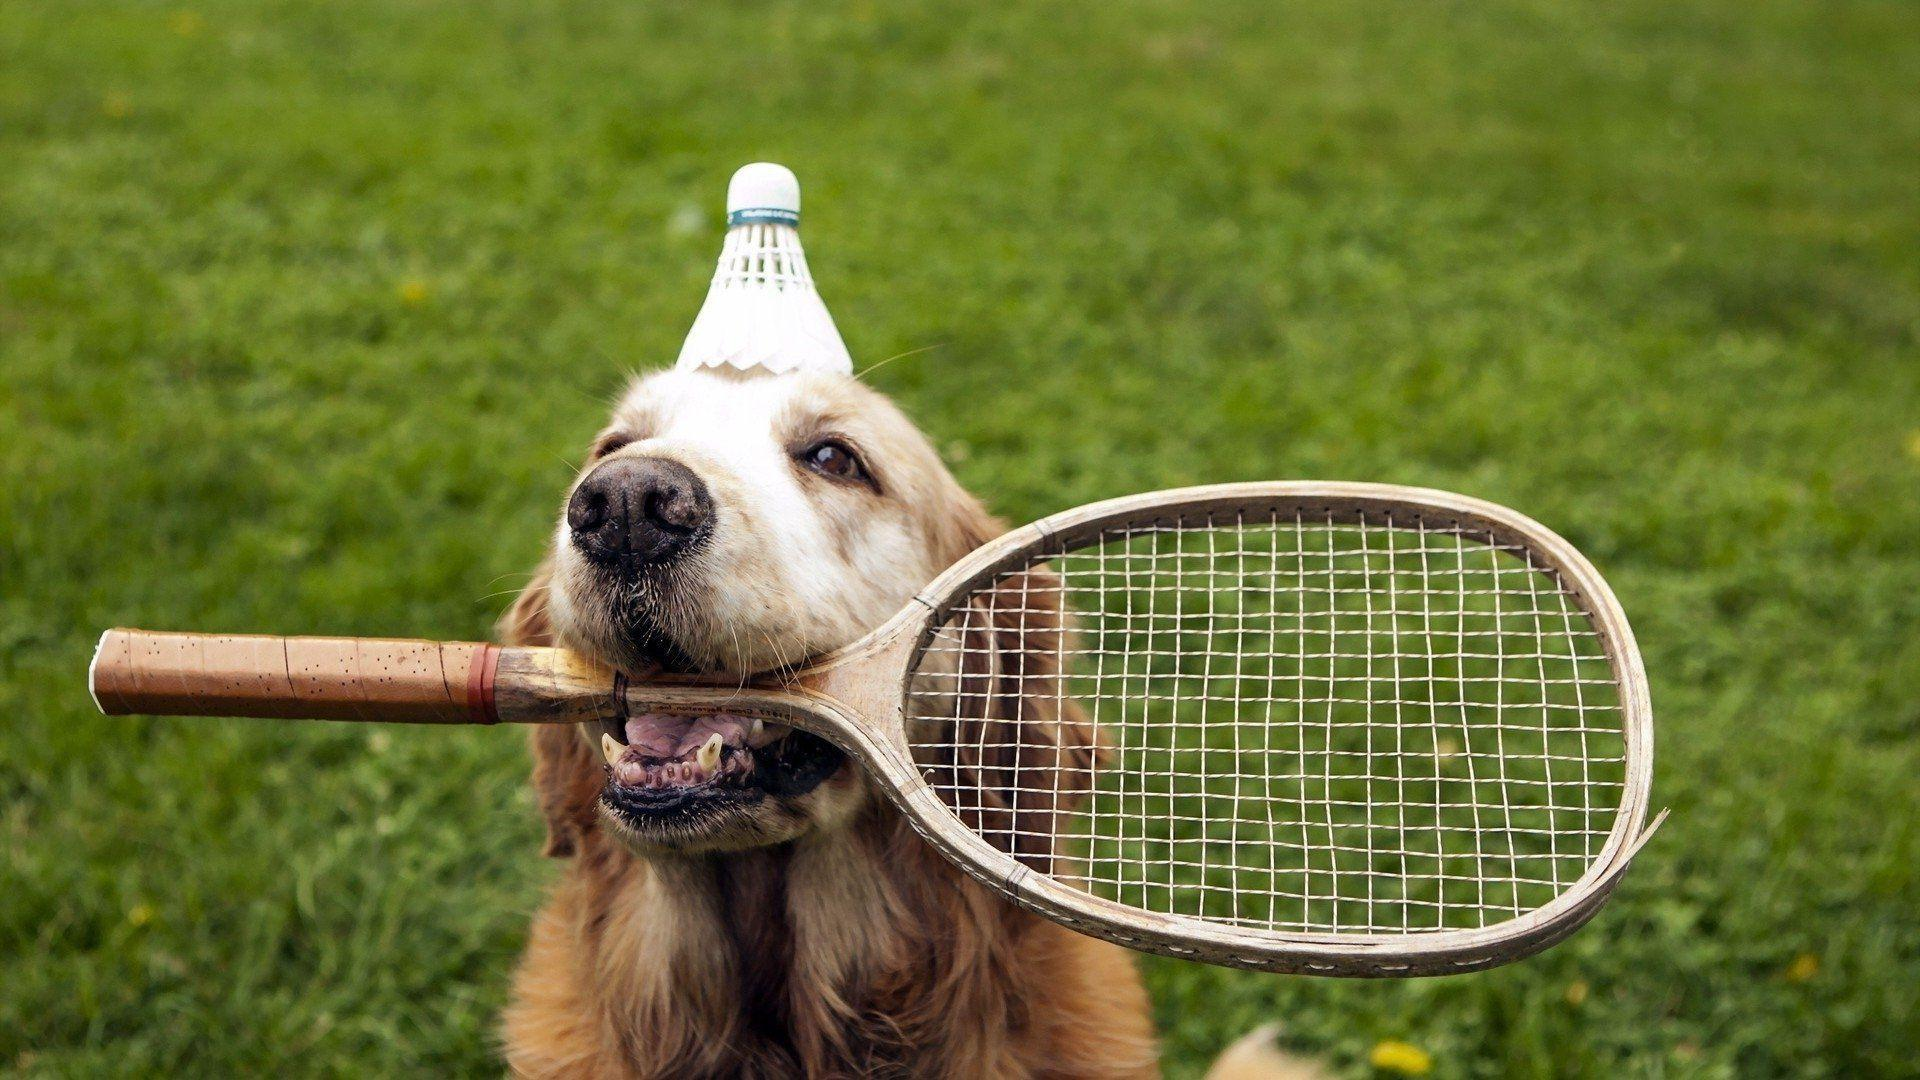 Badminton Dog Wallpaper